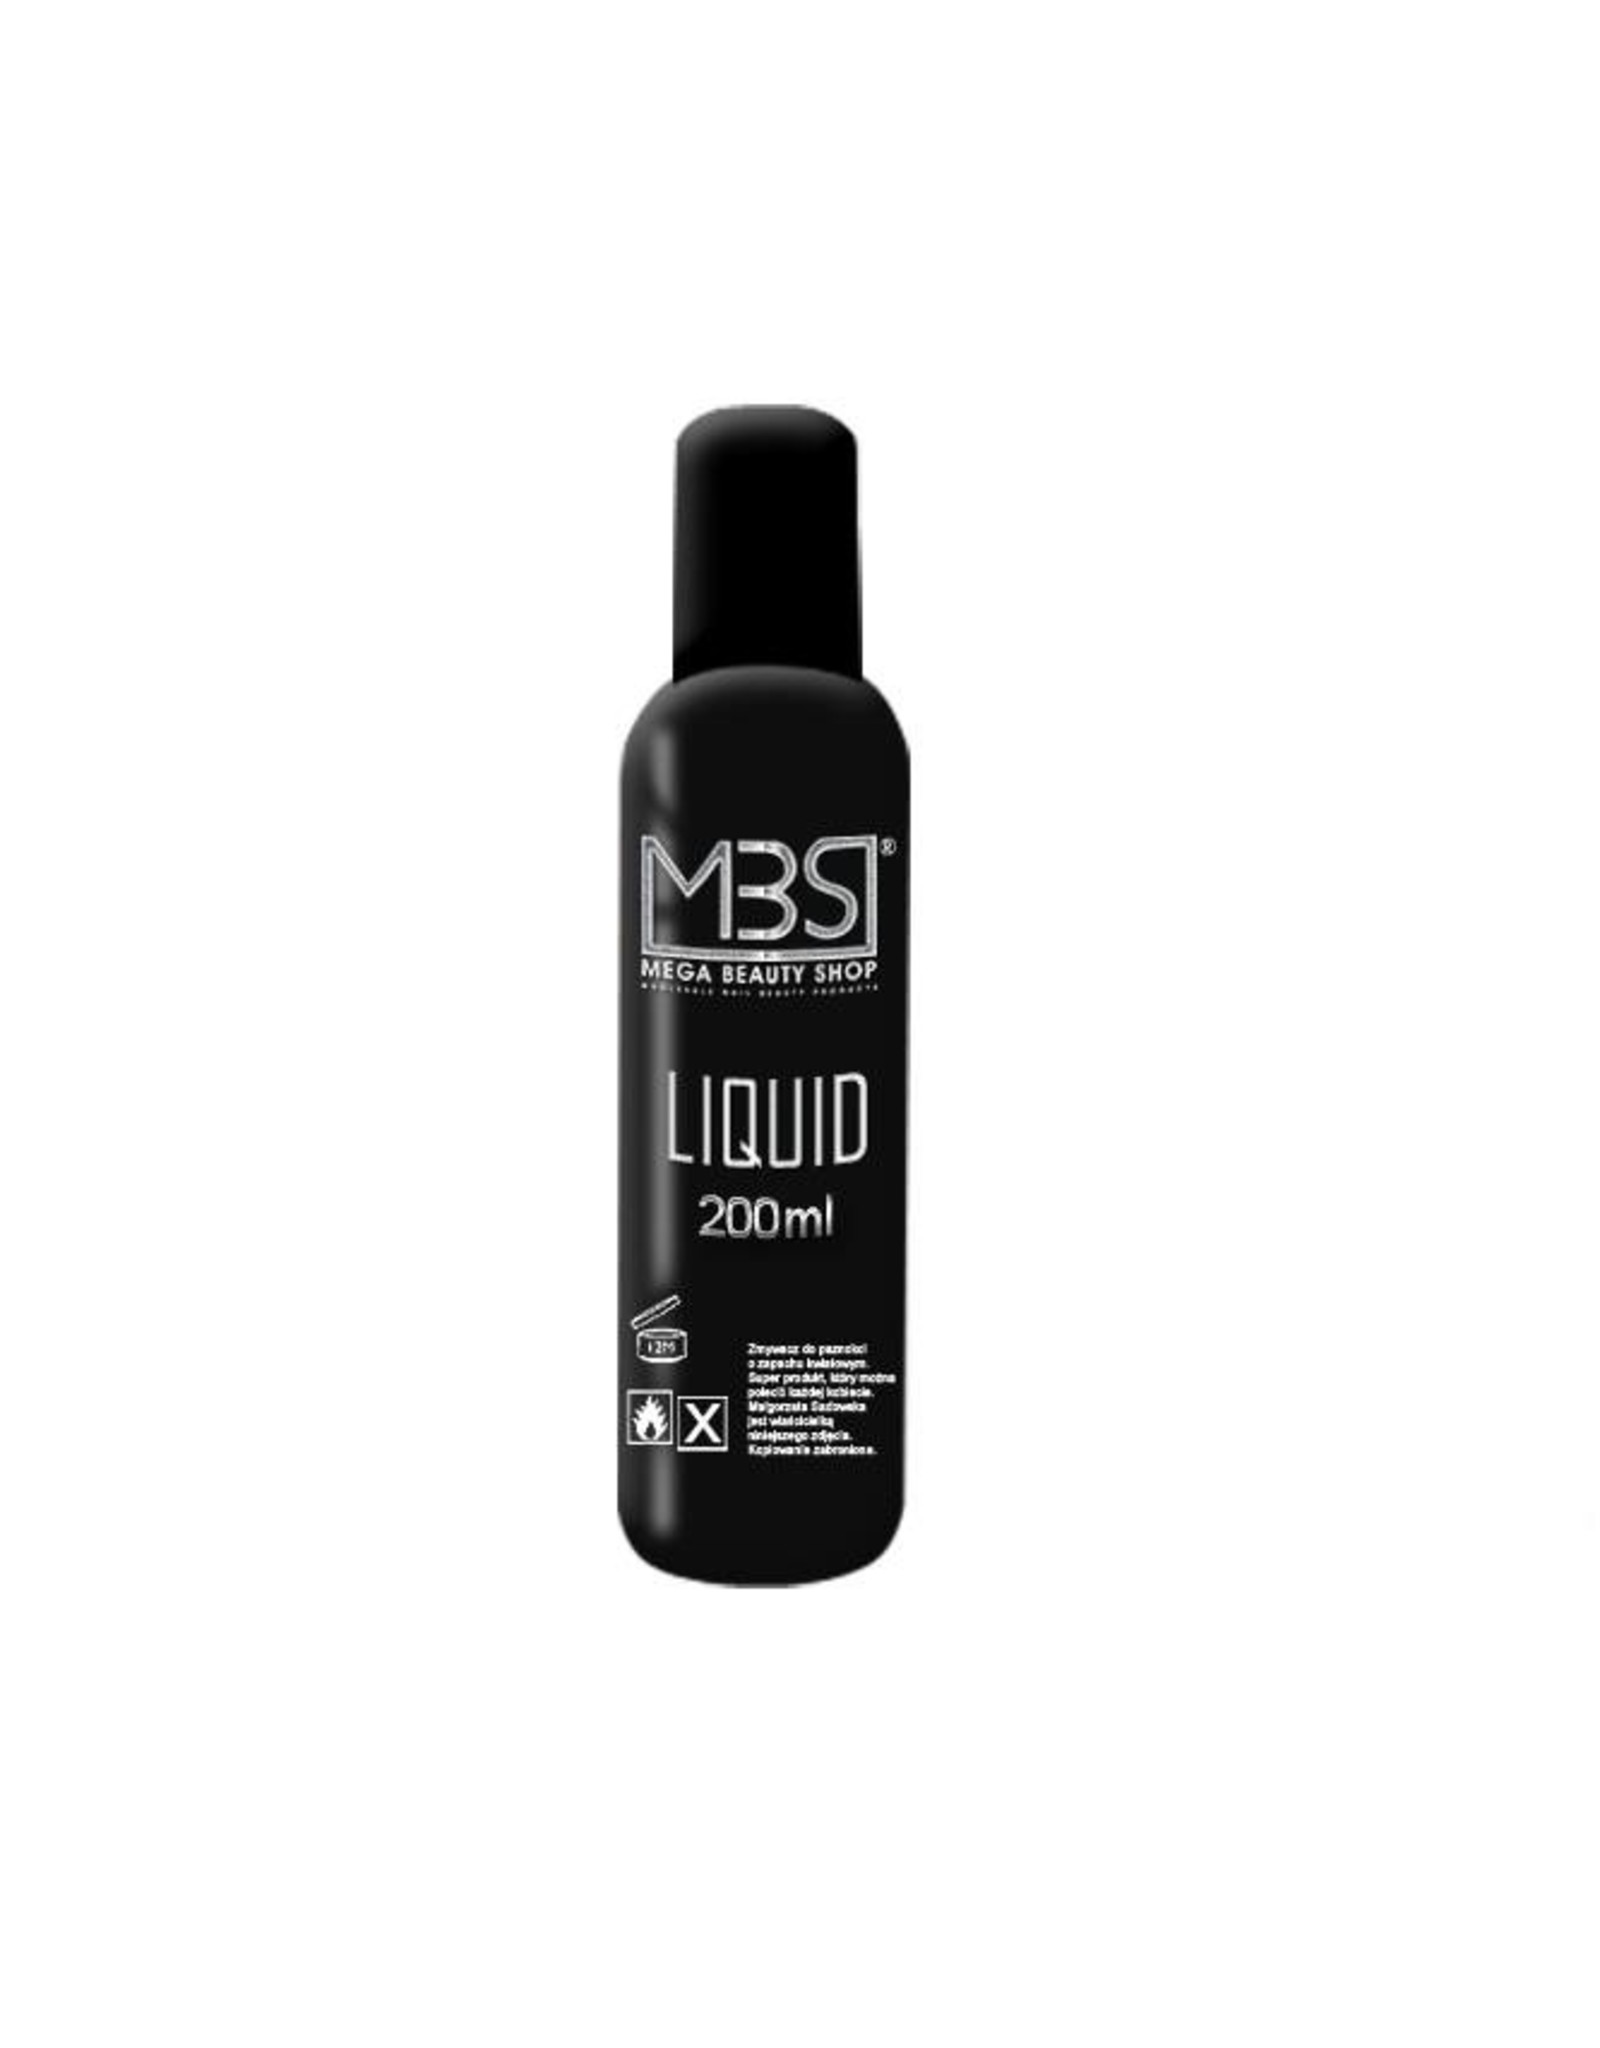 Mega Beauty Shop® MBS Liquid (200 ml)